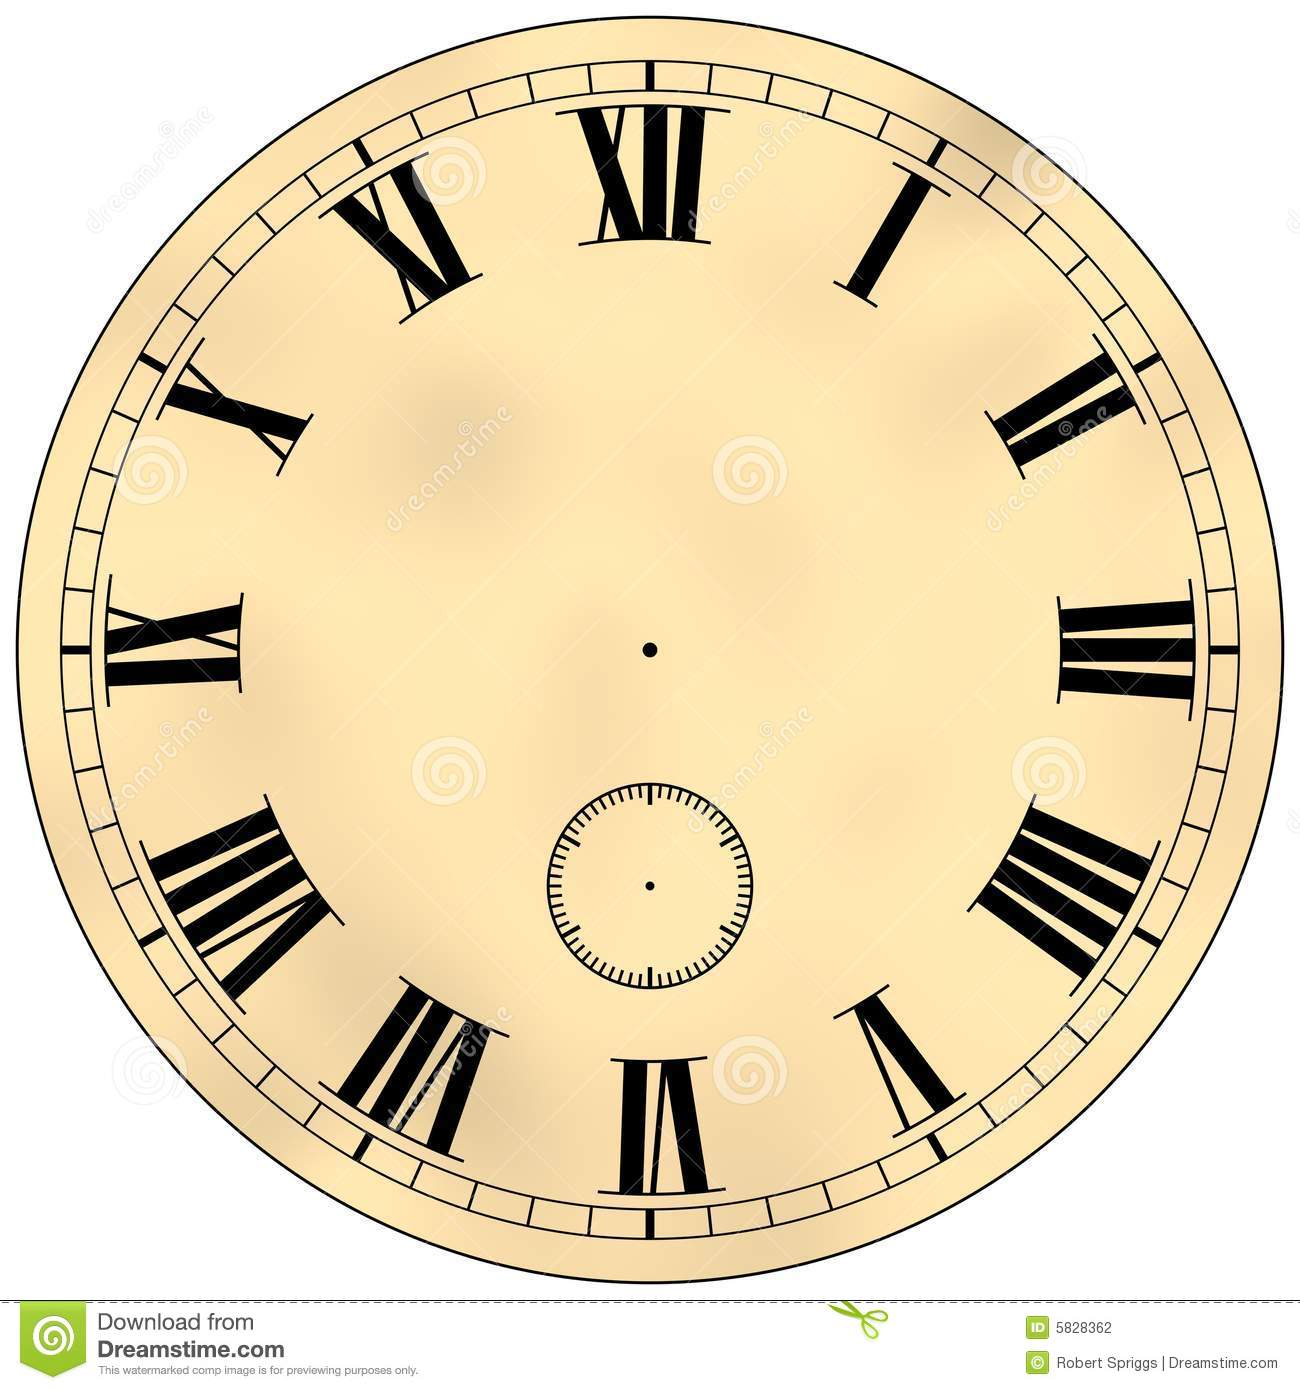 Antique Clock Clipart - Clipart Kid